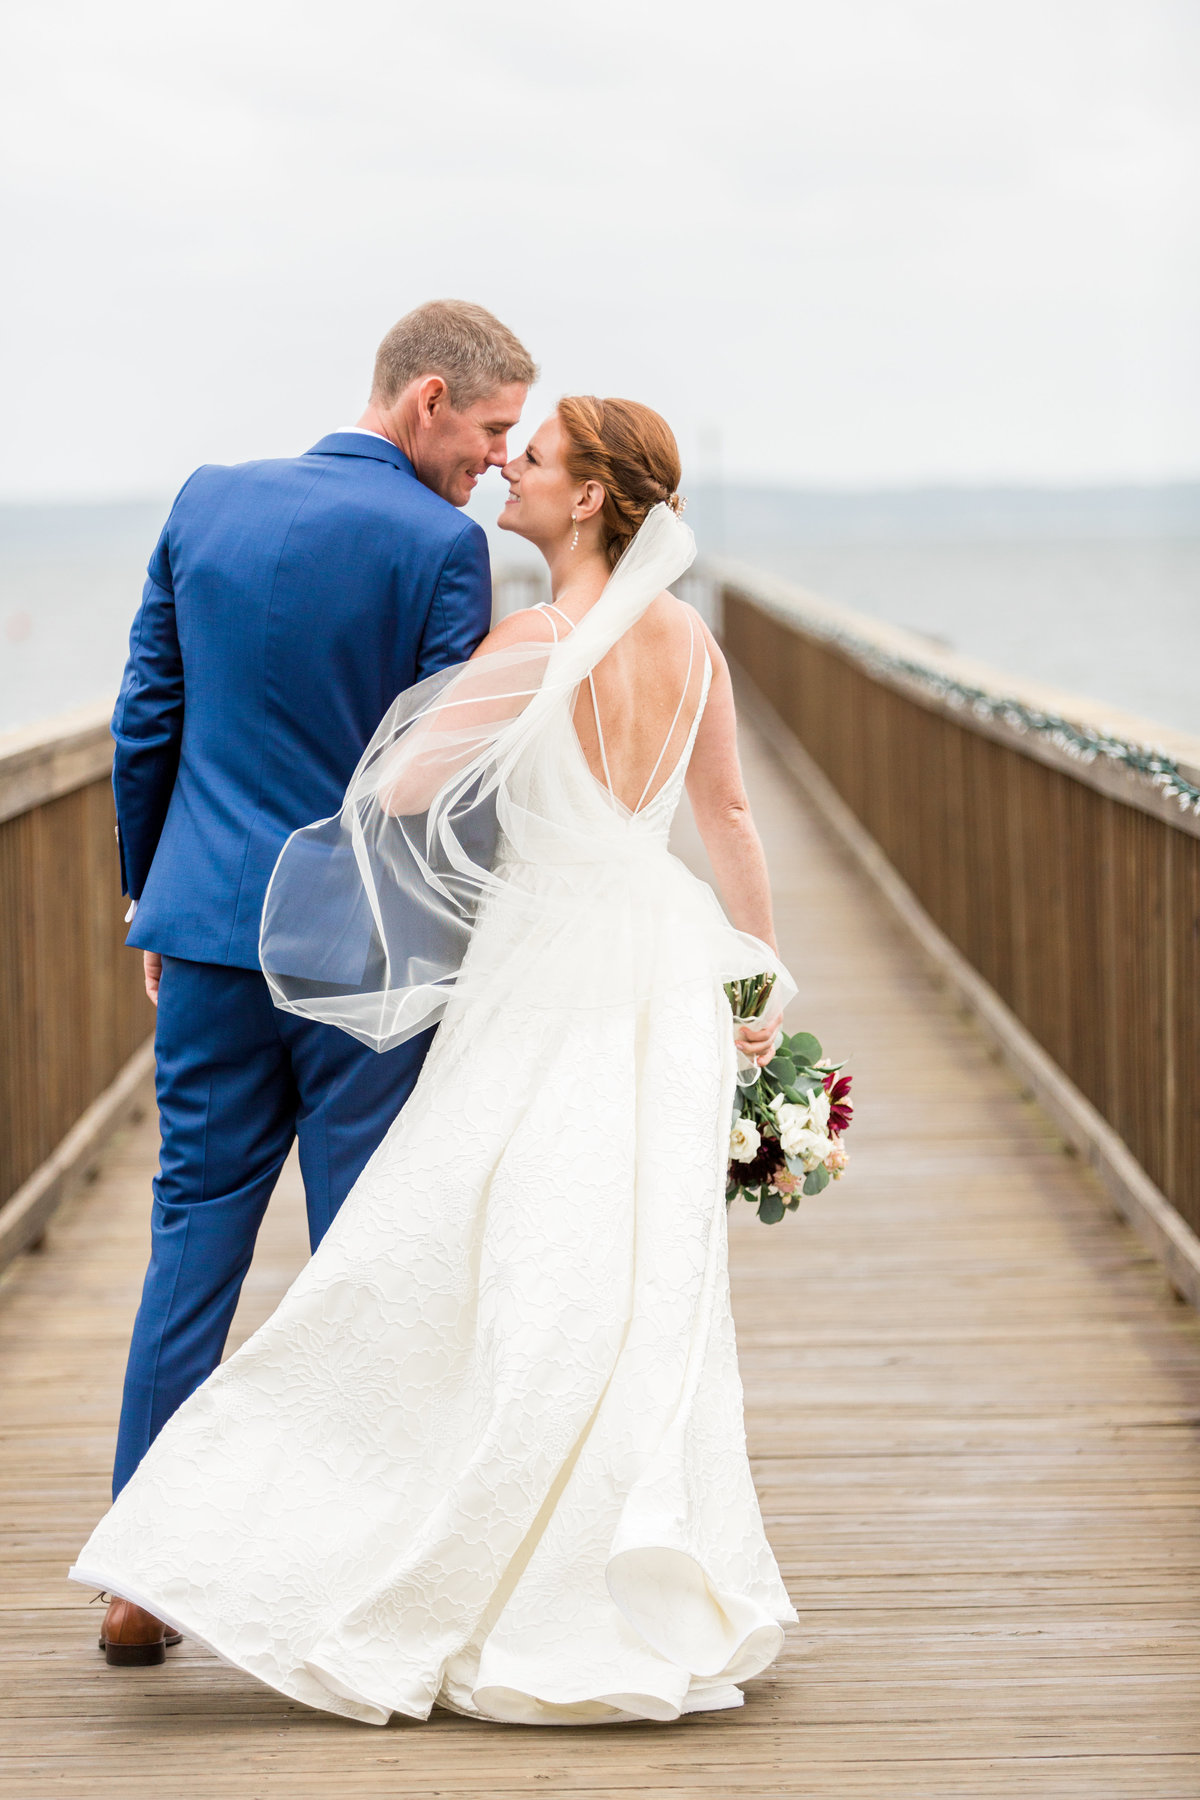 Kristina Staal Photography - Brittany & Ed Wedding - Coveleigh Club Rye NY Sep 14 2019-176